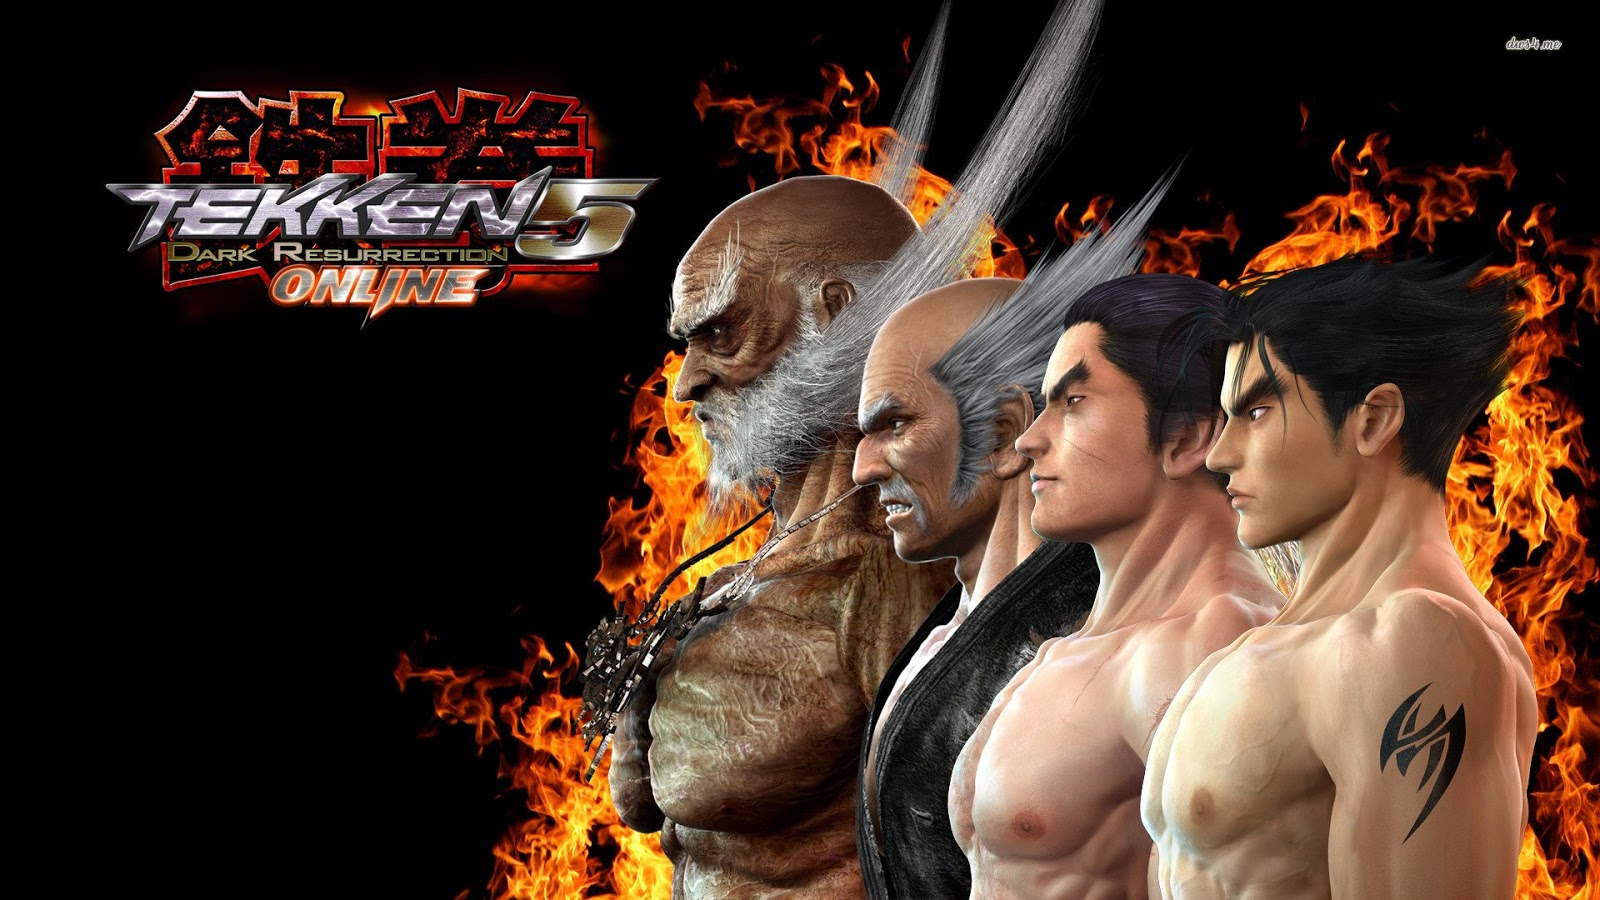 tekken 5 apk and obb